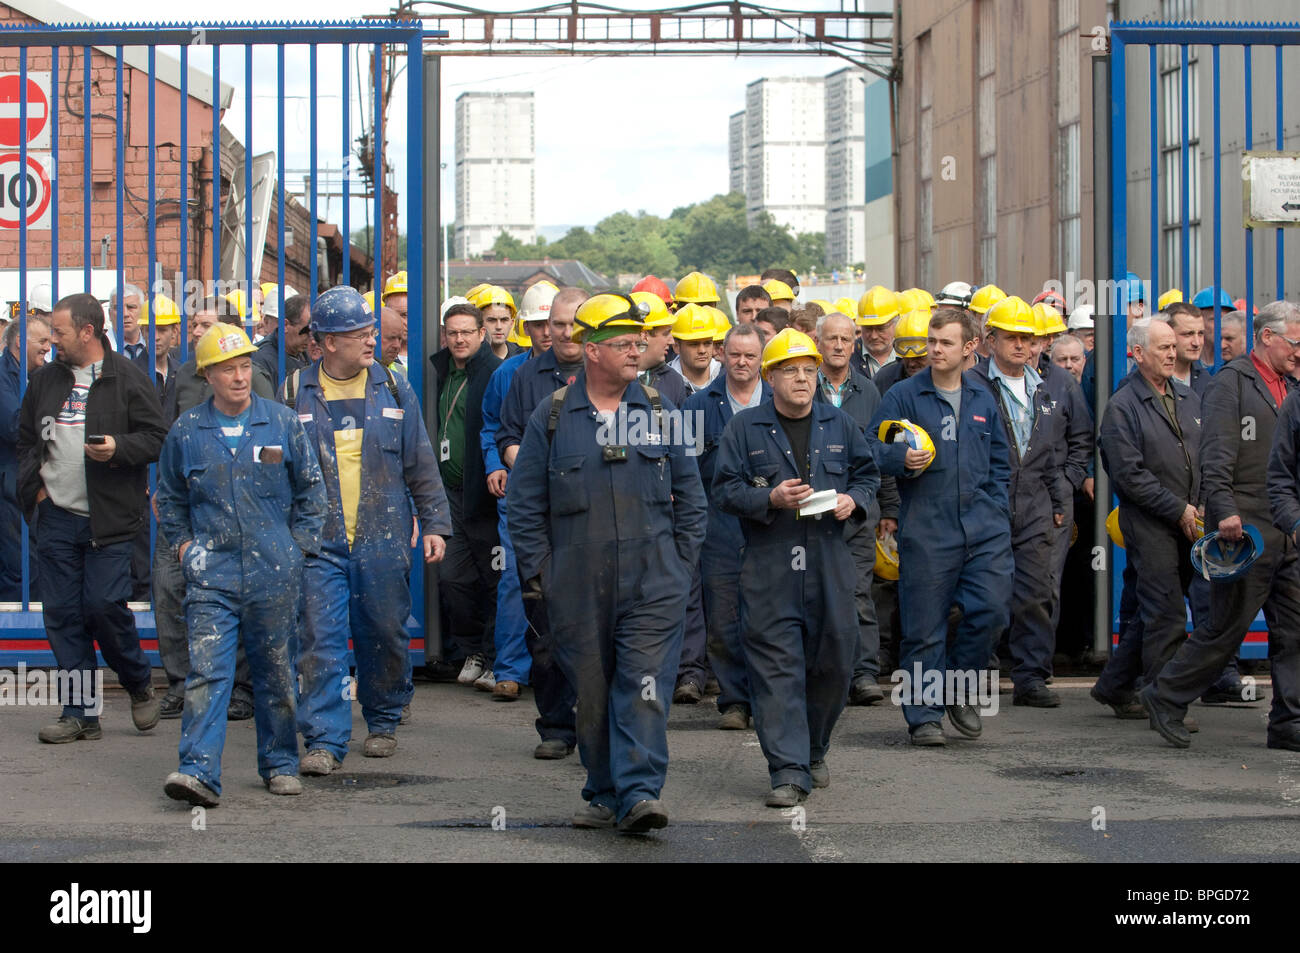 Workers at BAE Systems Govan Shipyard in Glasgow leave via the front entrance. - Stock Image